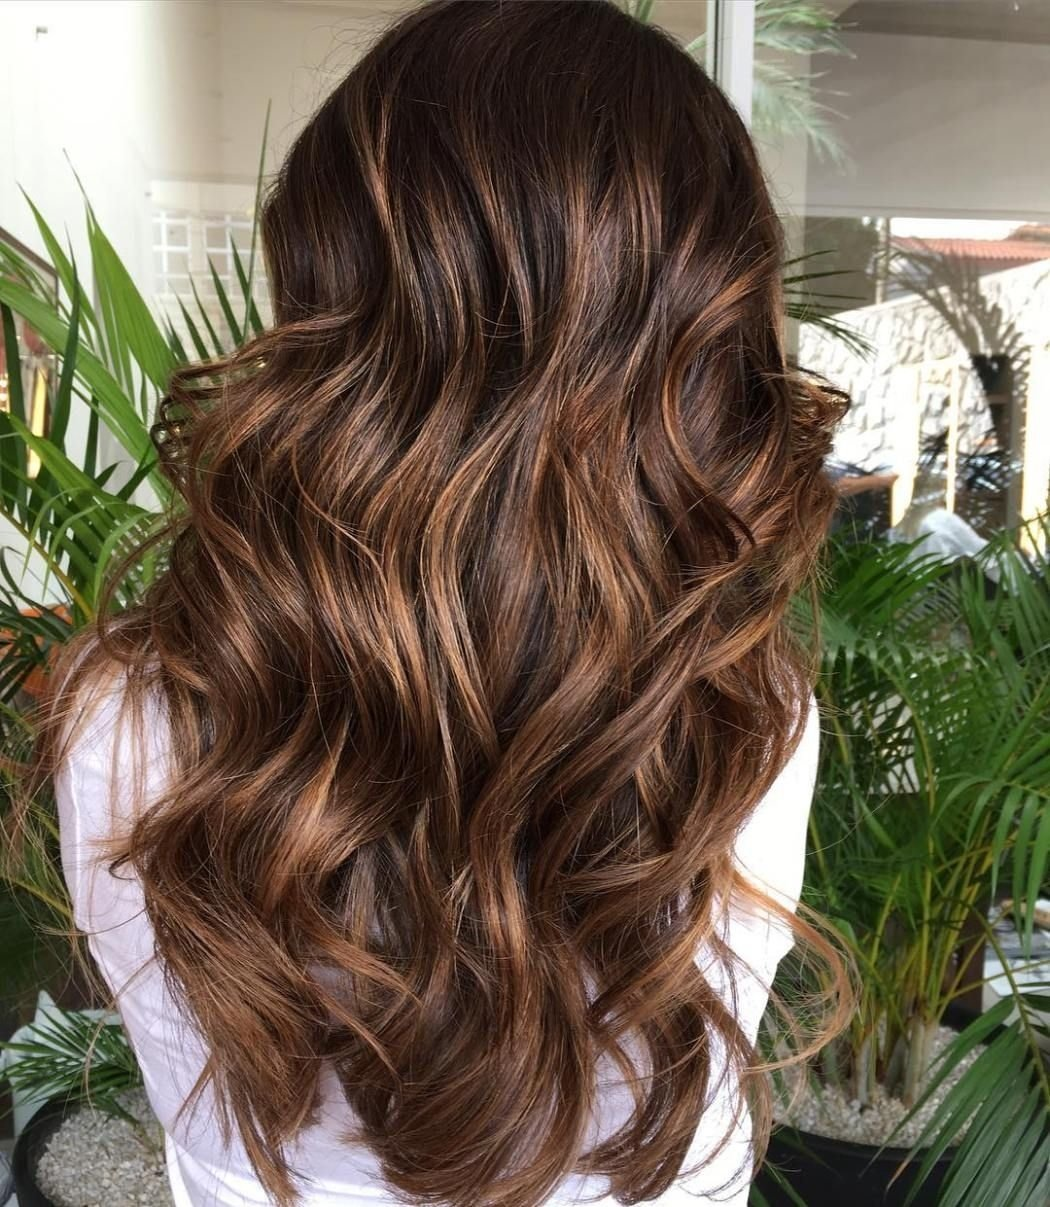 10 Fabulous Chocolate Brown Hair Color Ideas 60 chocolate brown hair color ideas for brunettes chocolate 1 2020